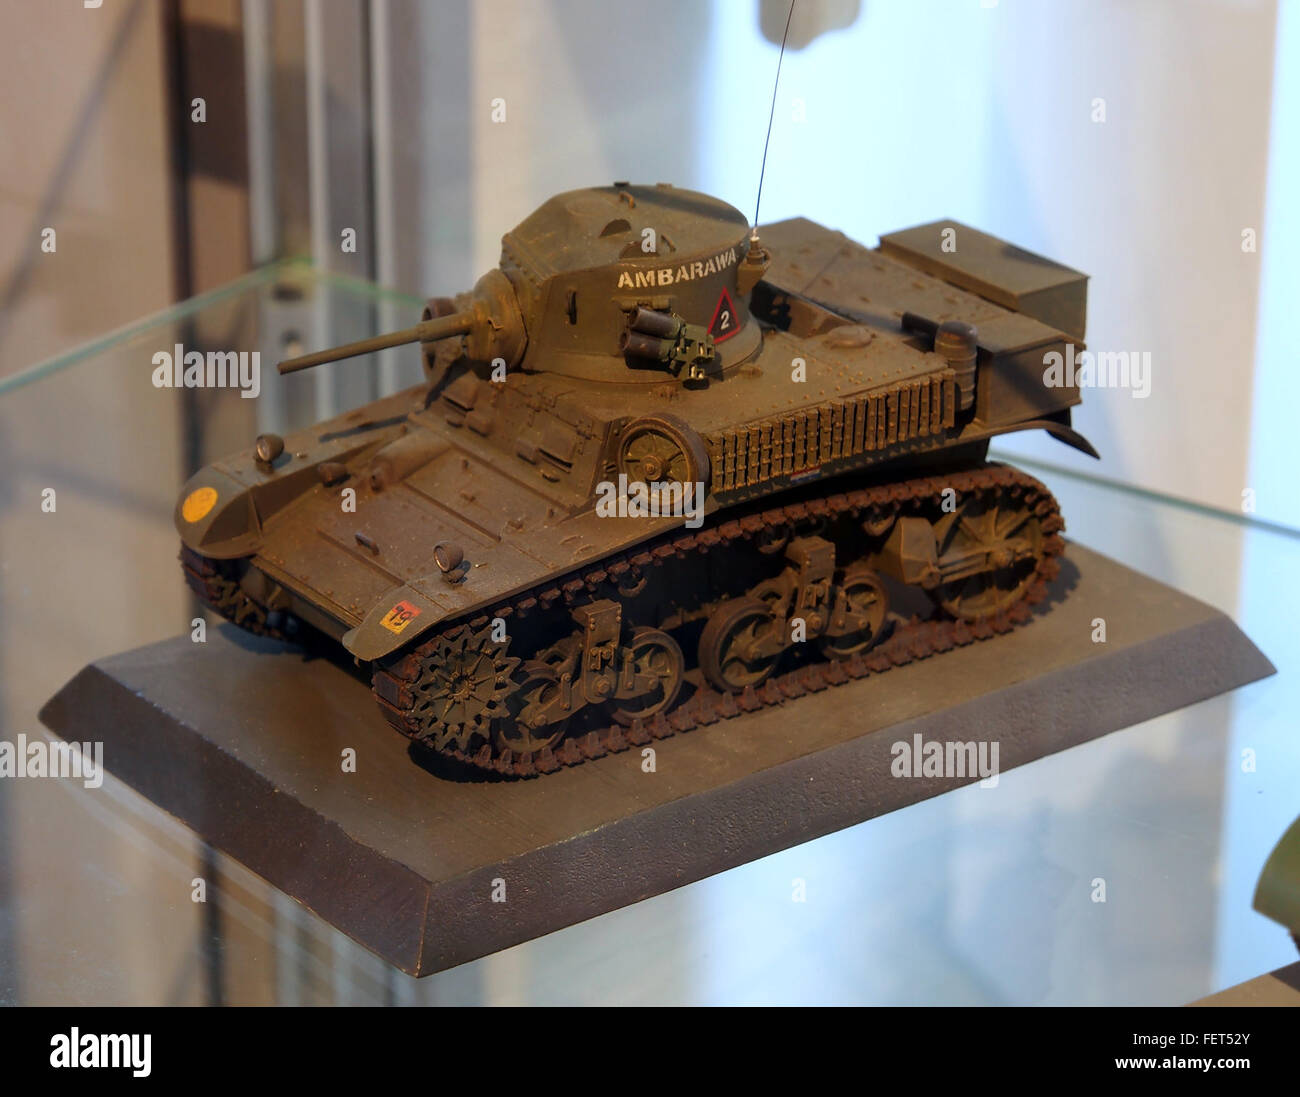 Model at the Dutch Cavalry Museum, Bernhardkazerne pic4 - Stock Image